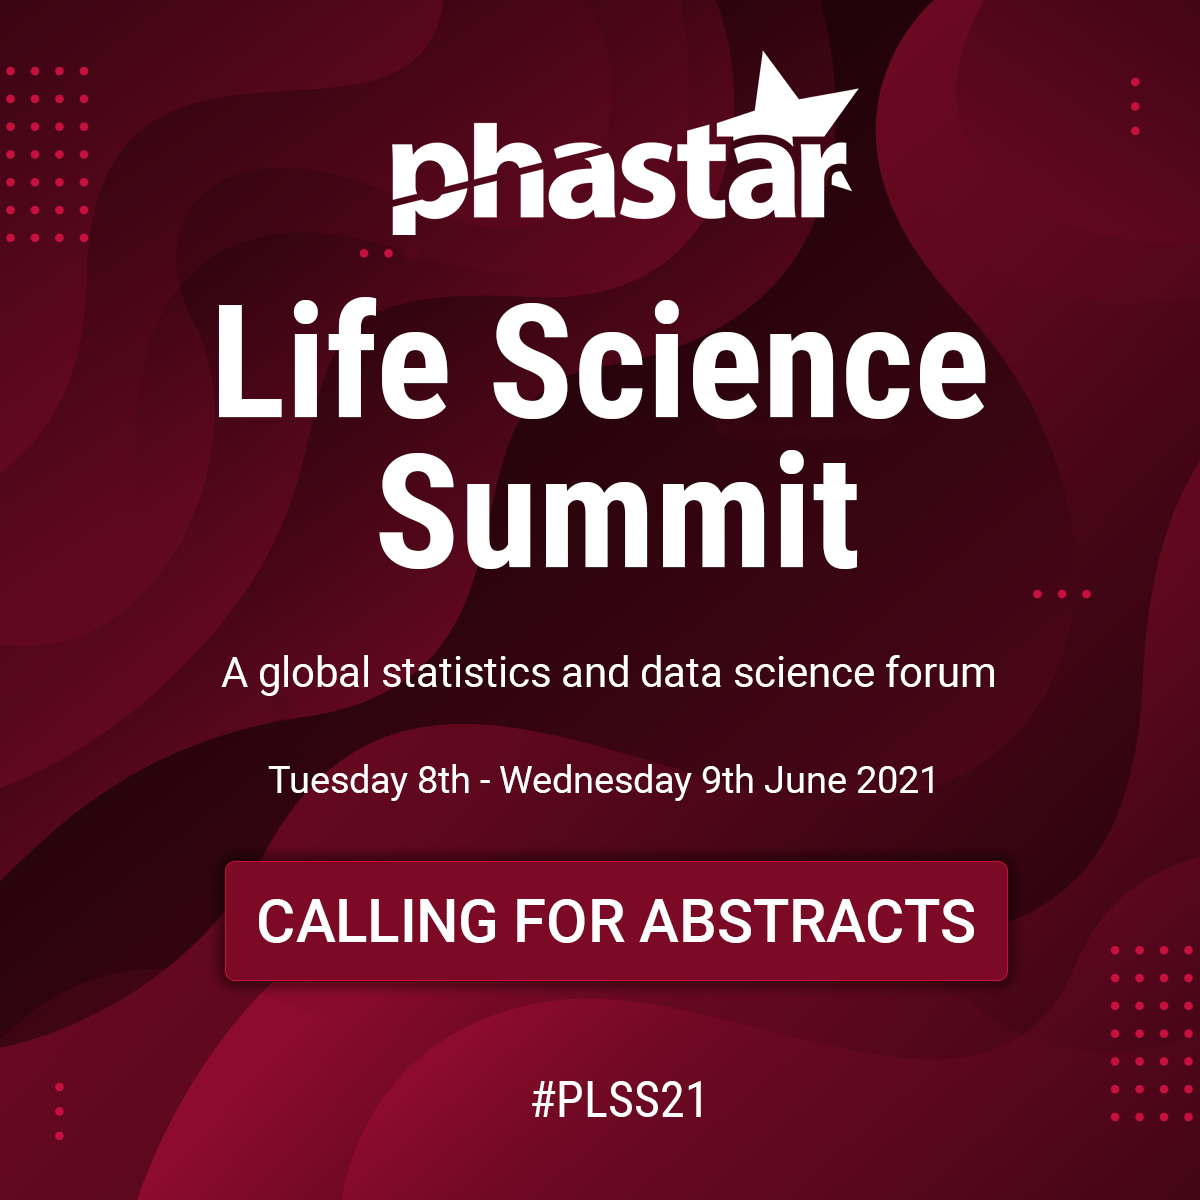 PHASTAR's Life Science Summit 2021 - Now calling for abstracts!